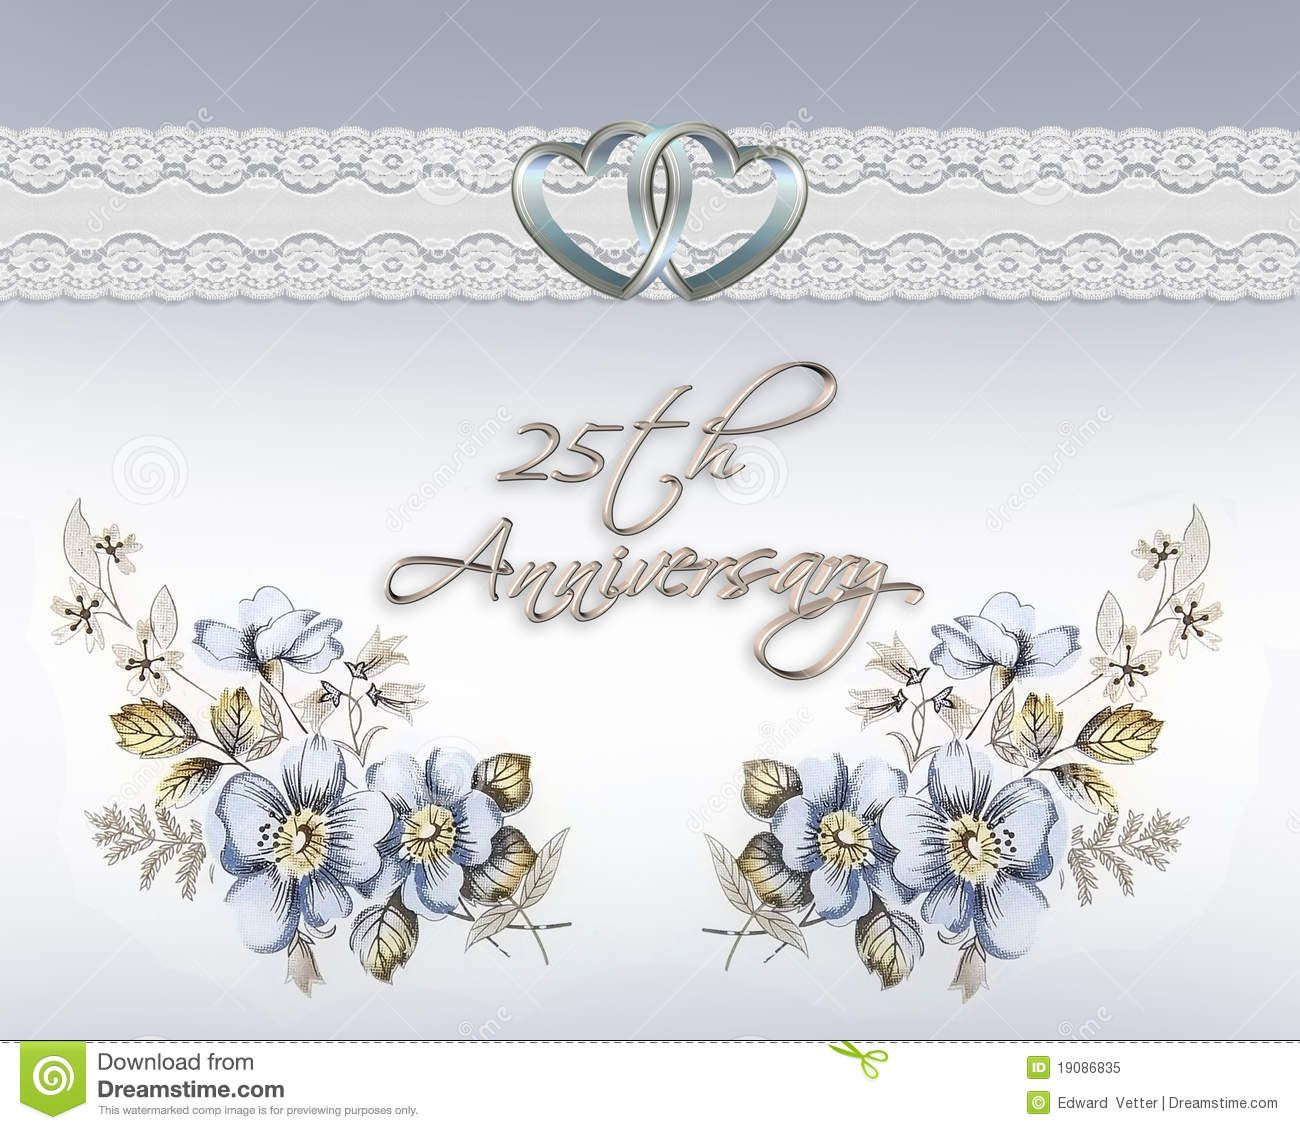 free printable 25th anniversary cards Google Search – Printable Wedding Anniversary Cards